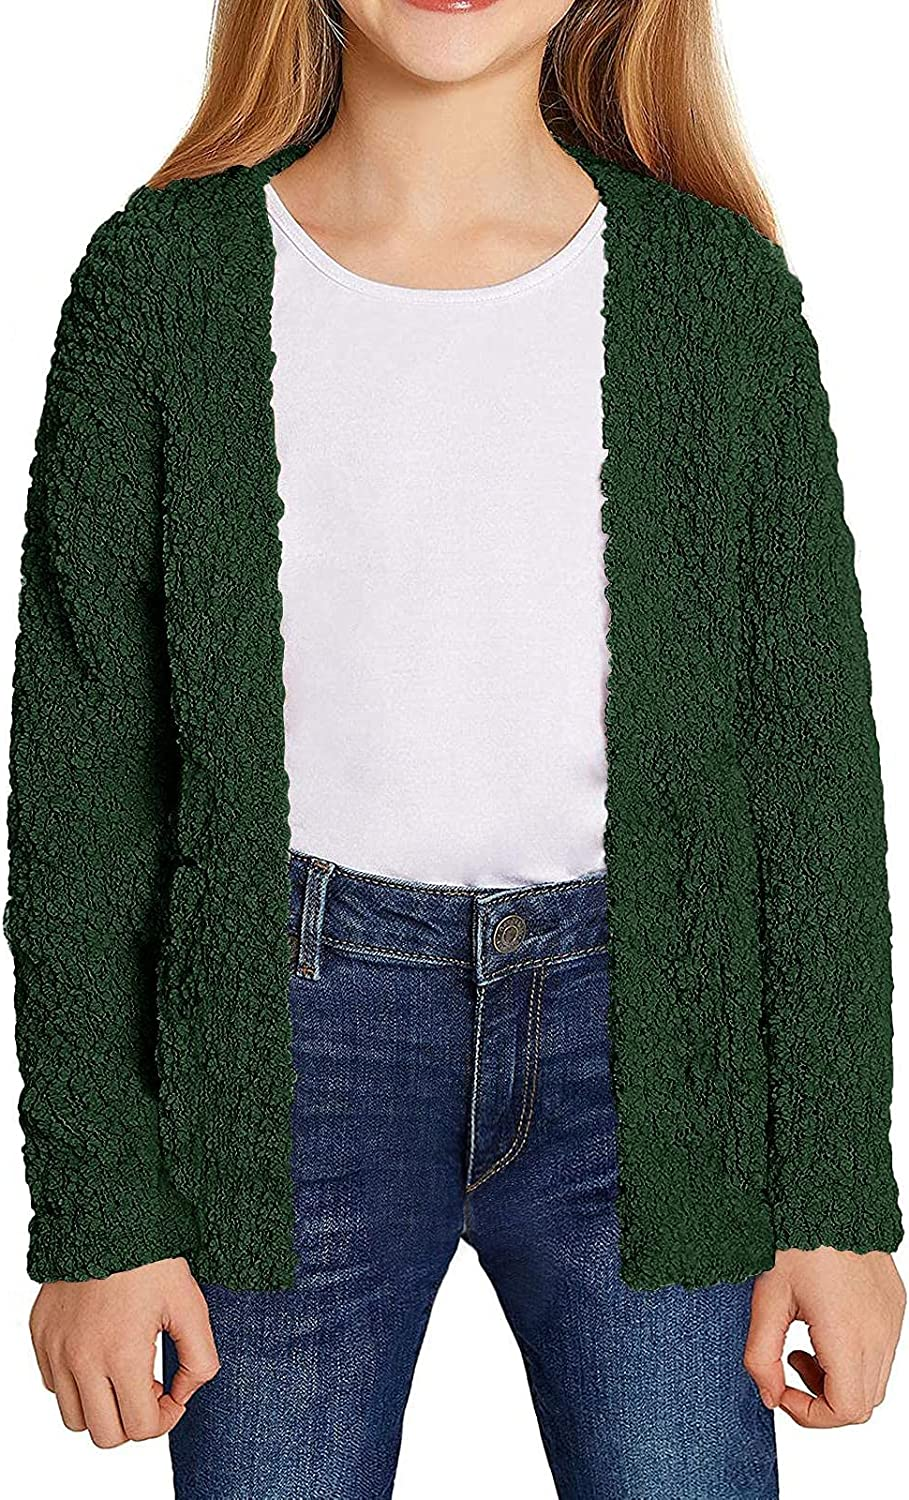 Girls Kids Casual Quality inspection Cardigans Sweaters Sweater Front Open Max 77% OFF Knitted